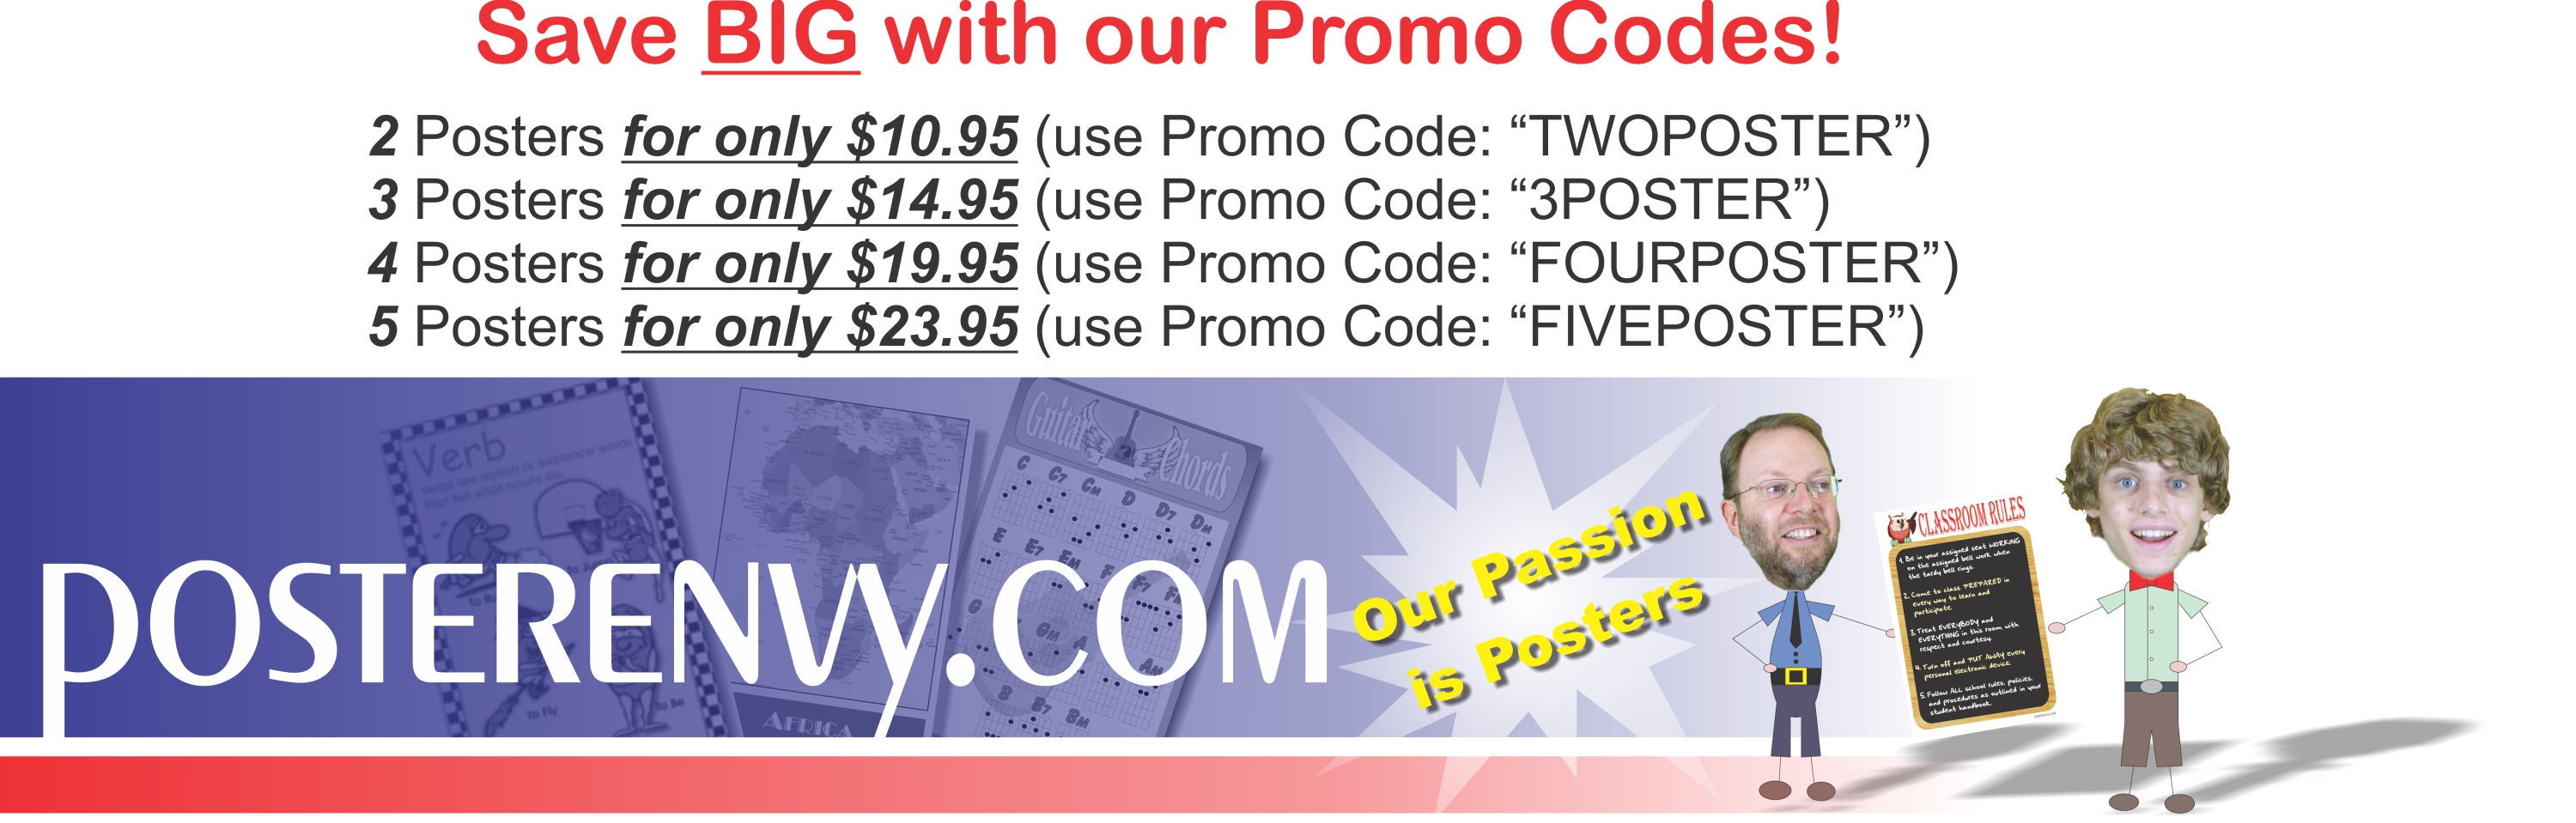 Save Big With Our Promo Codes!